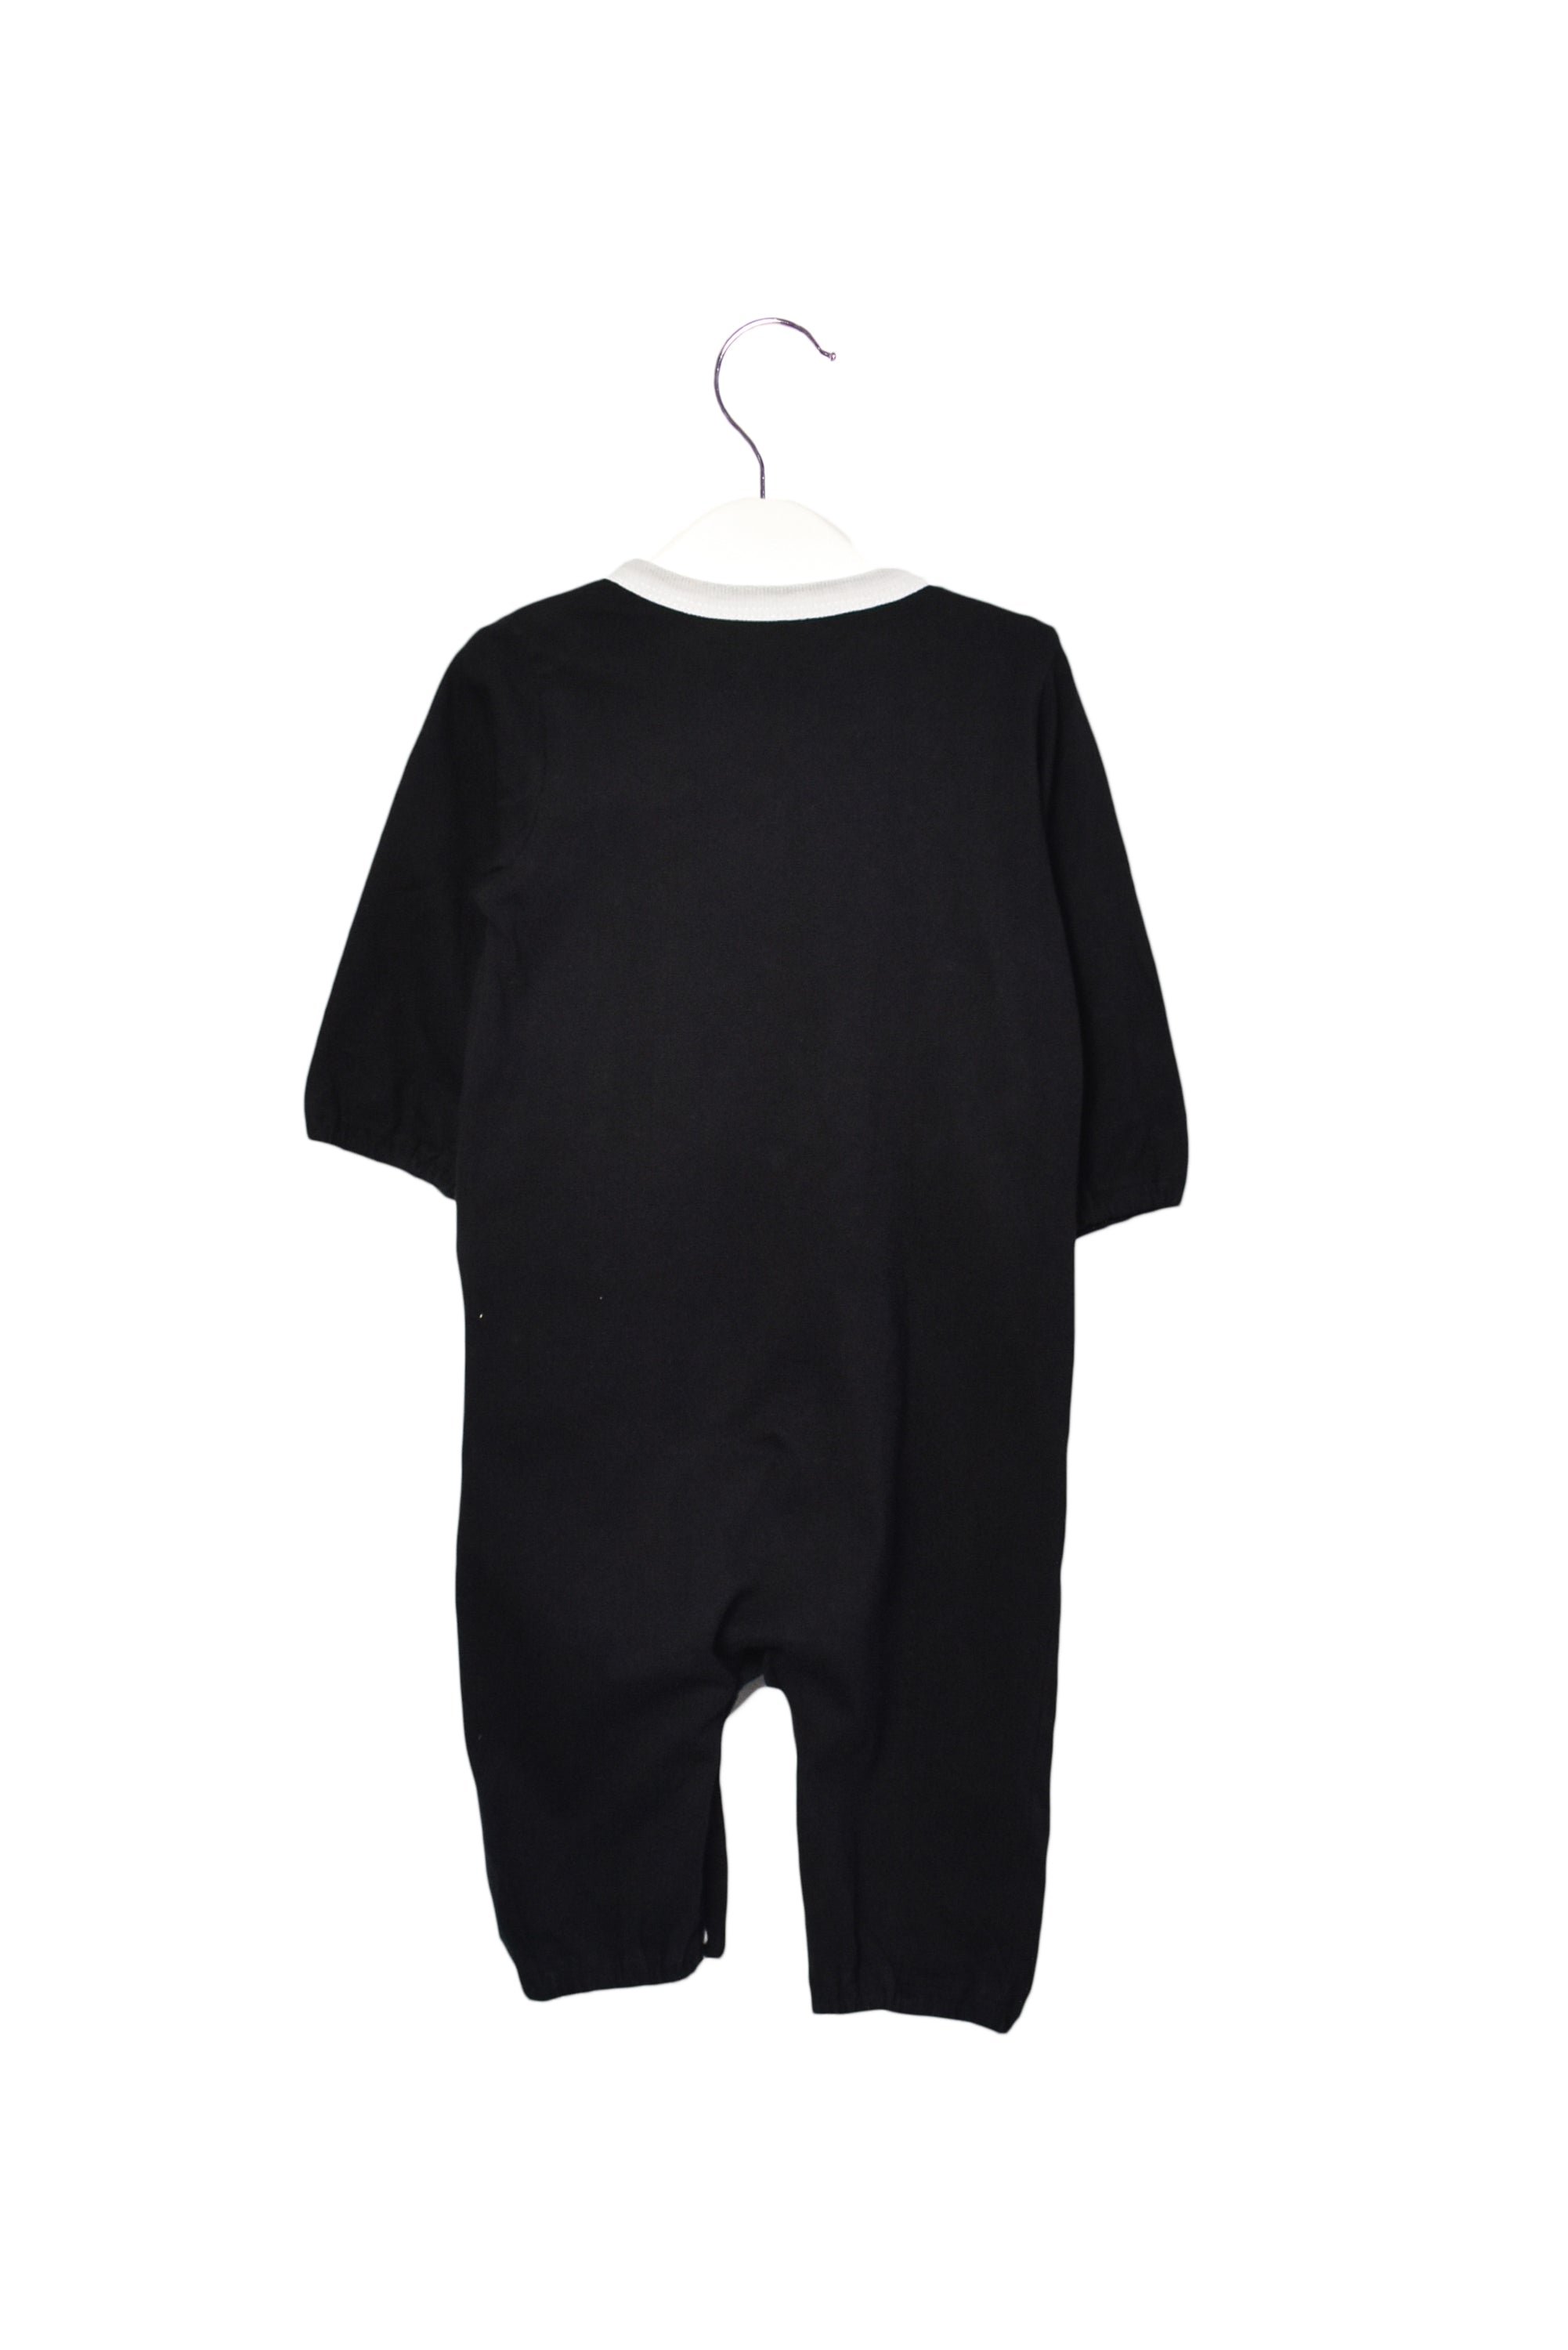 10014580 Comme Ca Ism Baby ~ Jumpsuit 0-6M (50 - 70cm) at Retykle